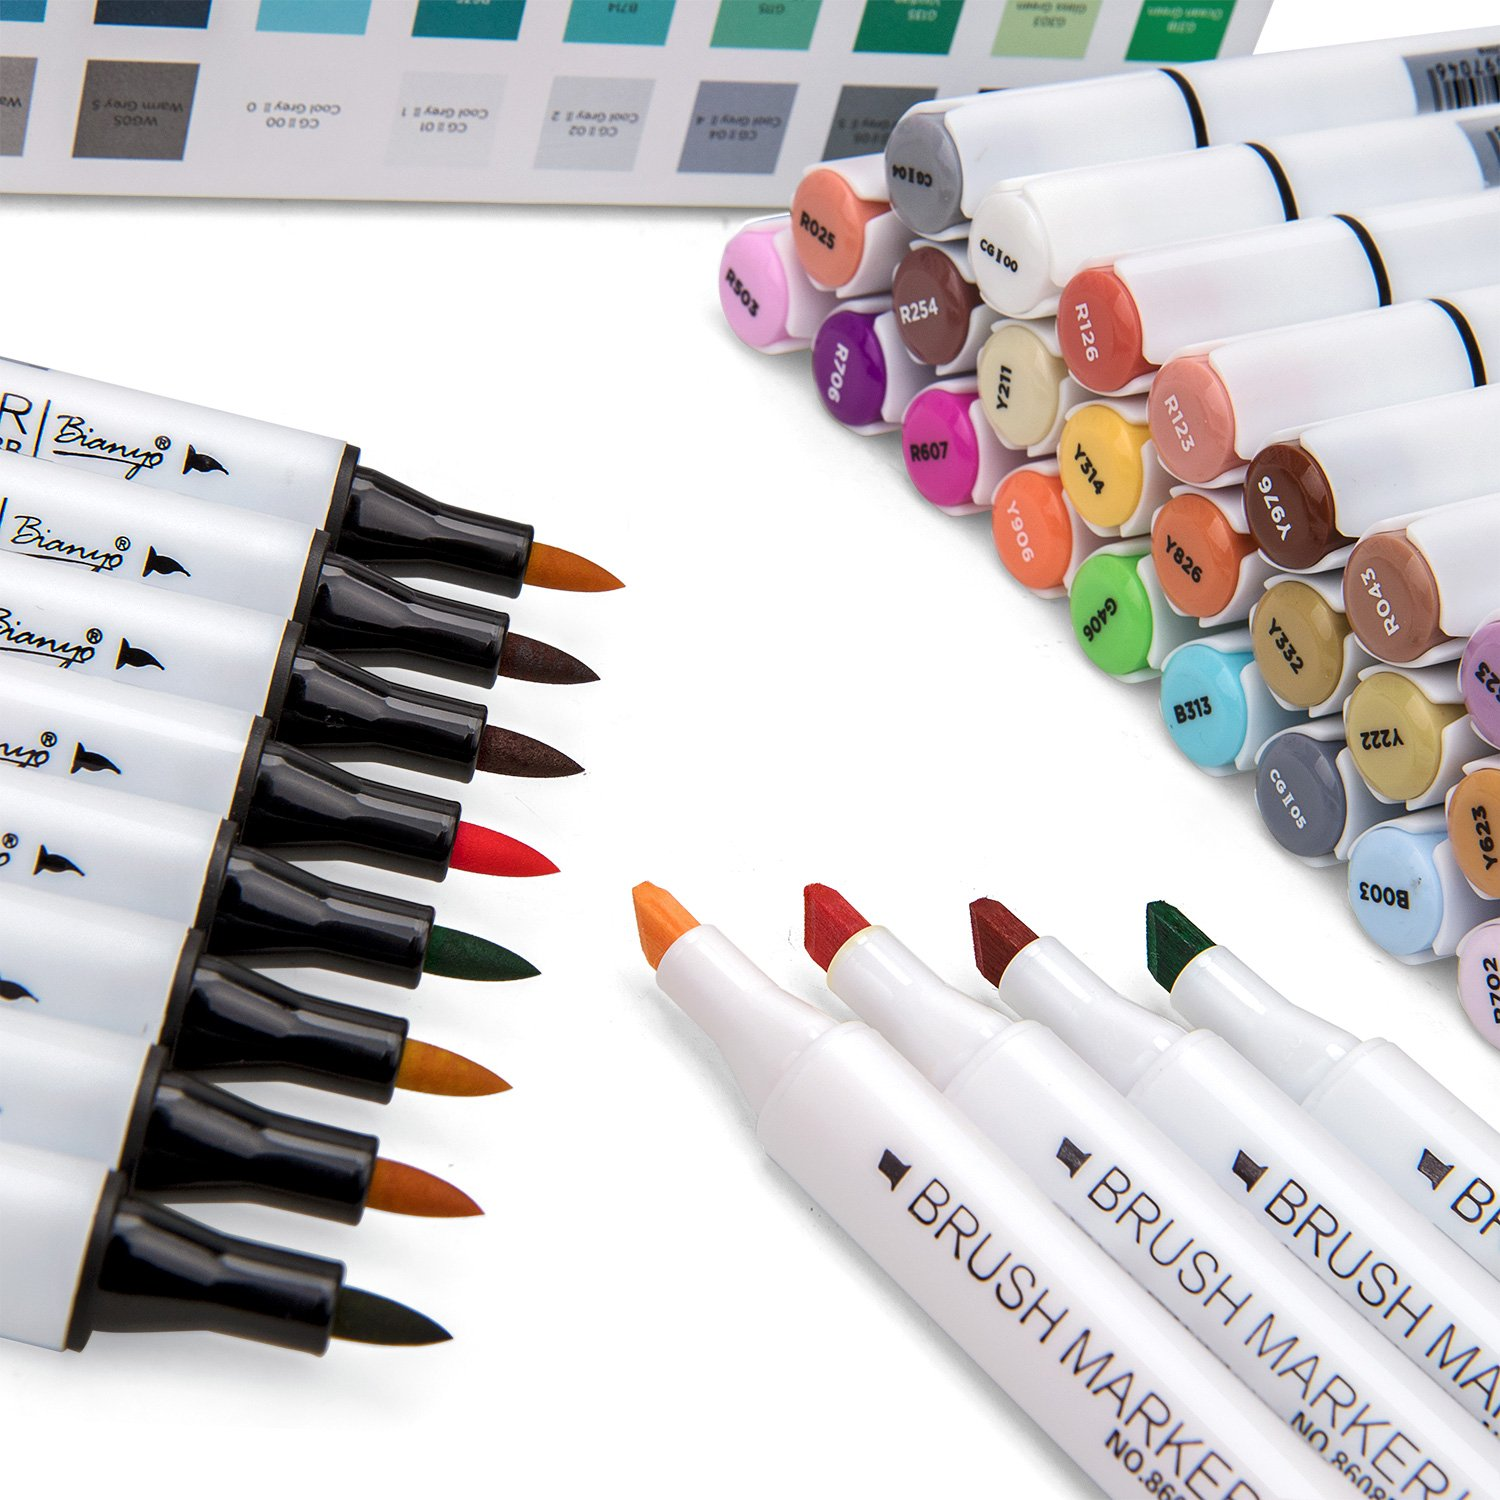 Bianyo Professional Series  Alcohol-Based Dual Tip Brush Markers Set (Set of 72,Display Box) by Bianyo (Image #3)